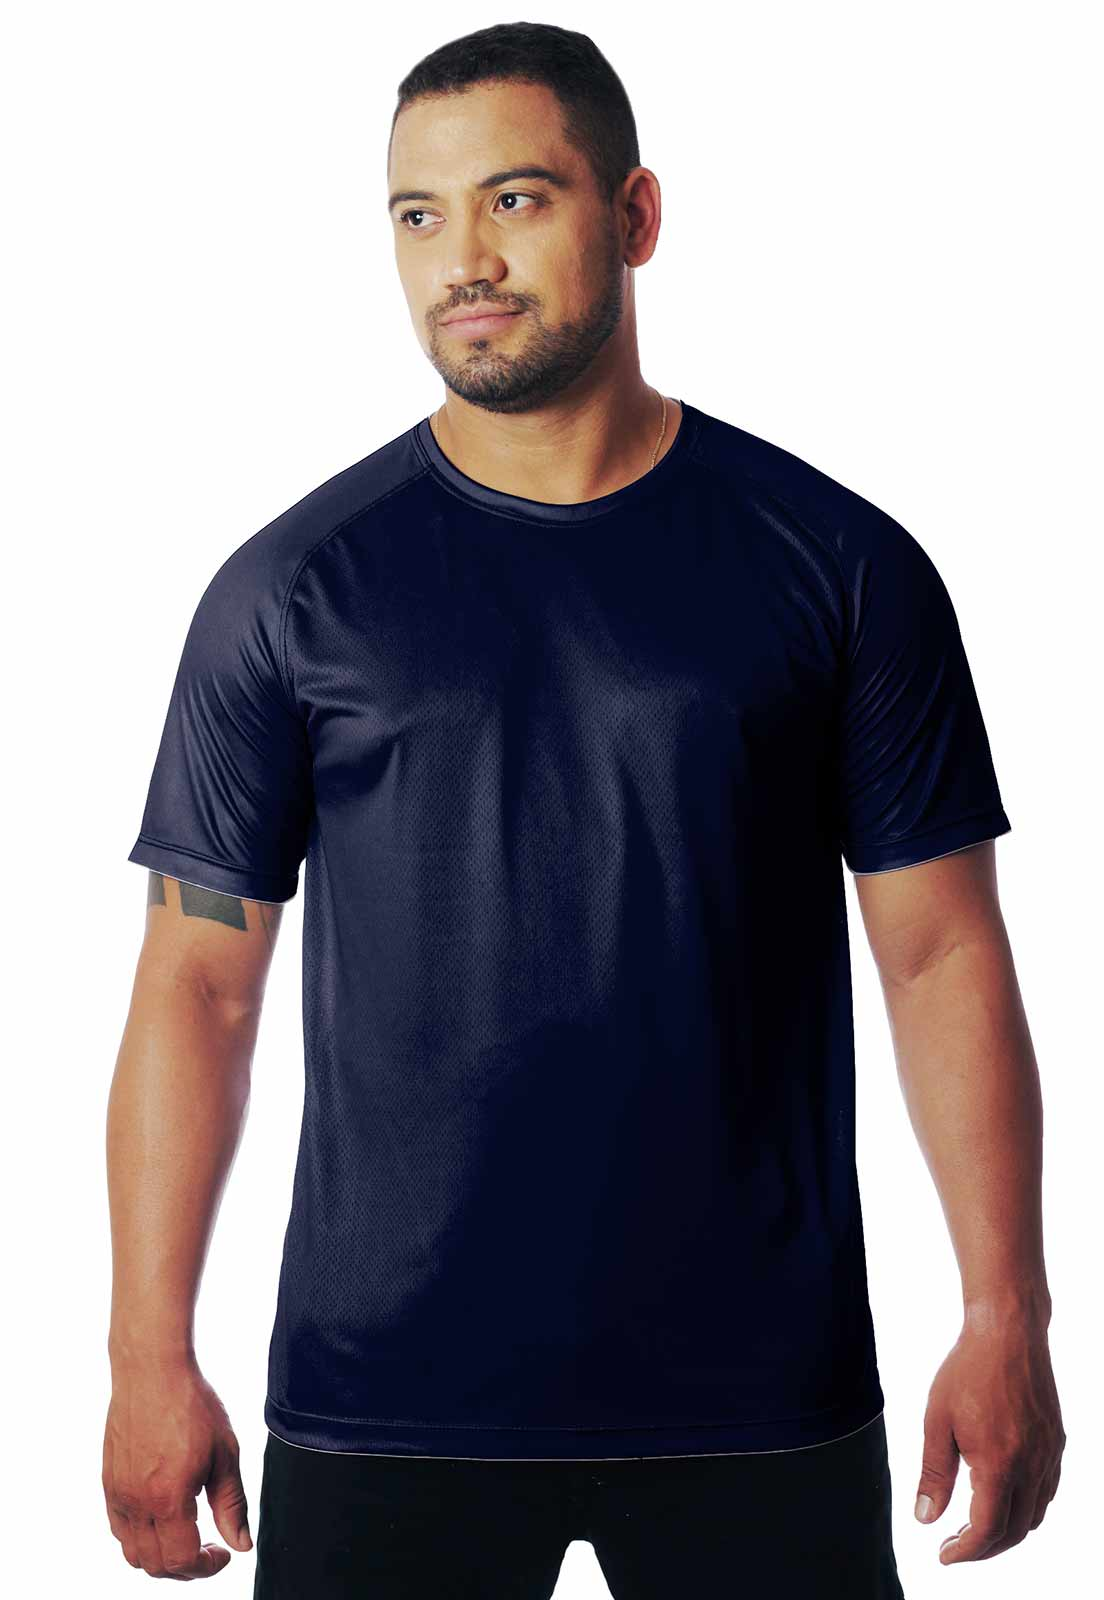 CAMISETA BÁSICA AZUL MARINHO DIA A DIA MANGA CURTA MASCULINA  - REAL HUNTER OUTDOORS